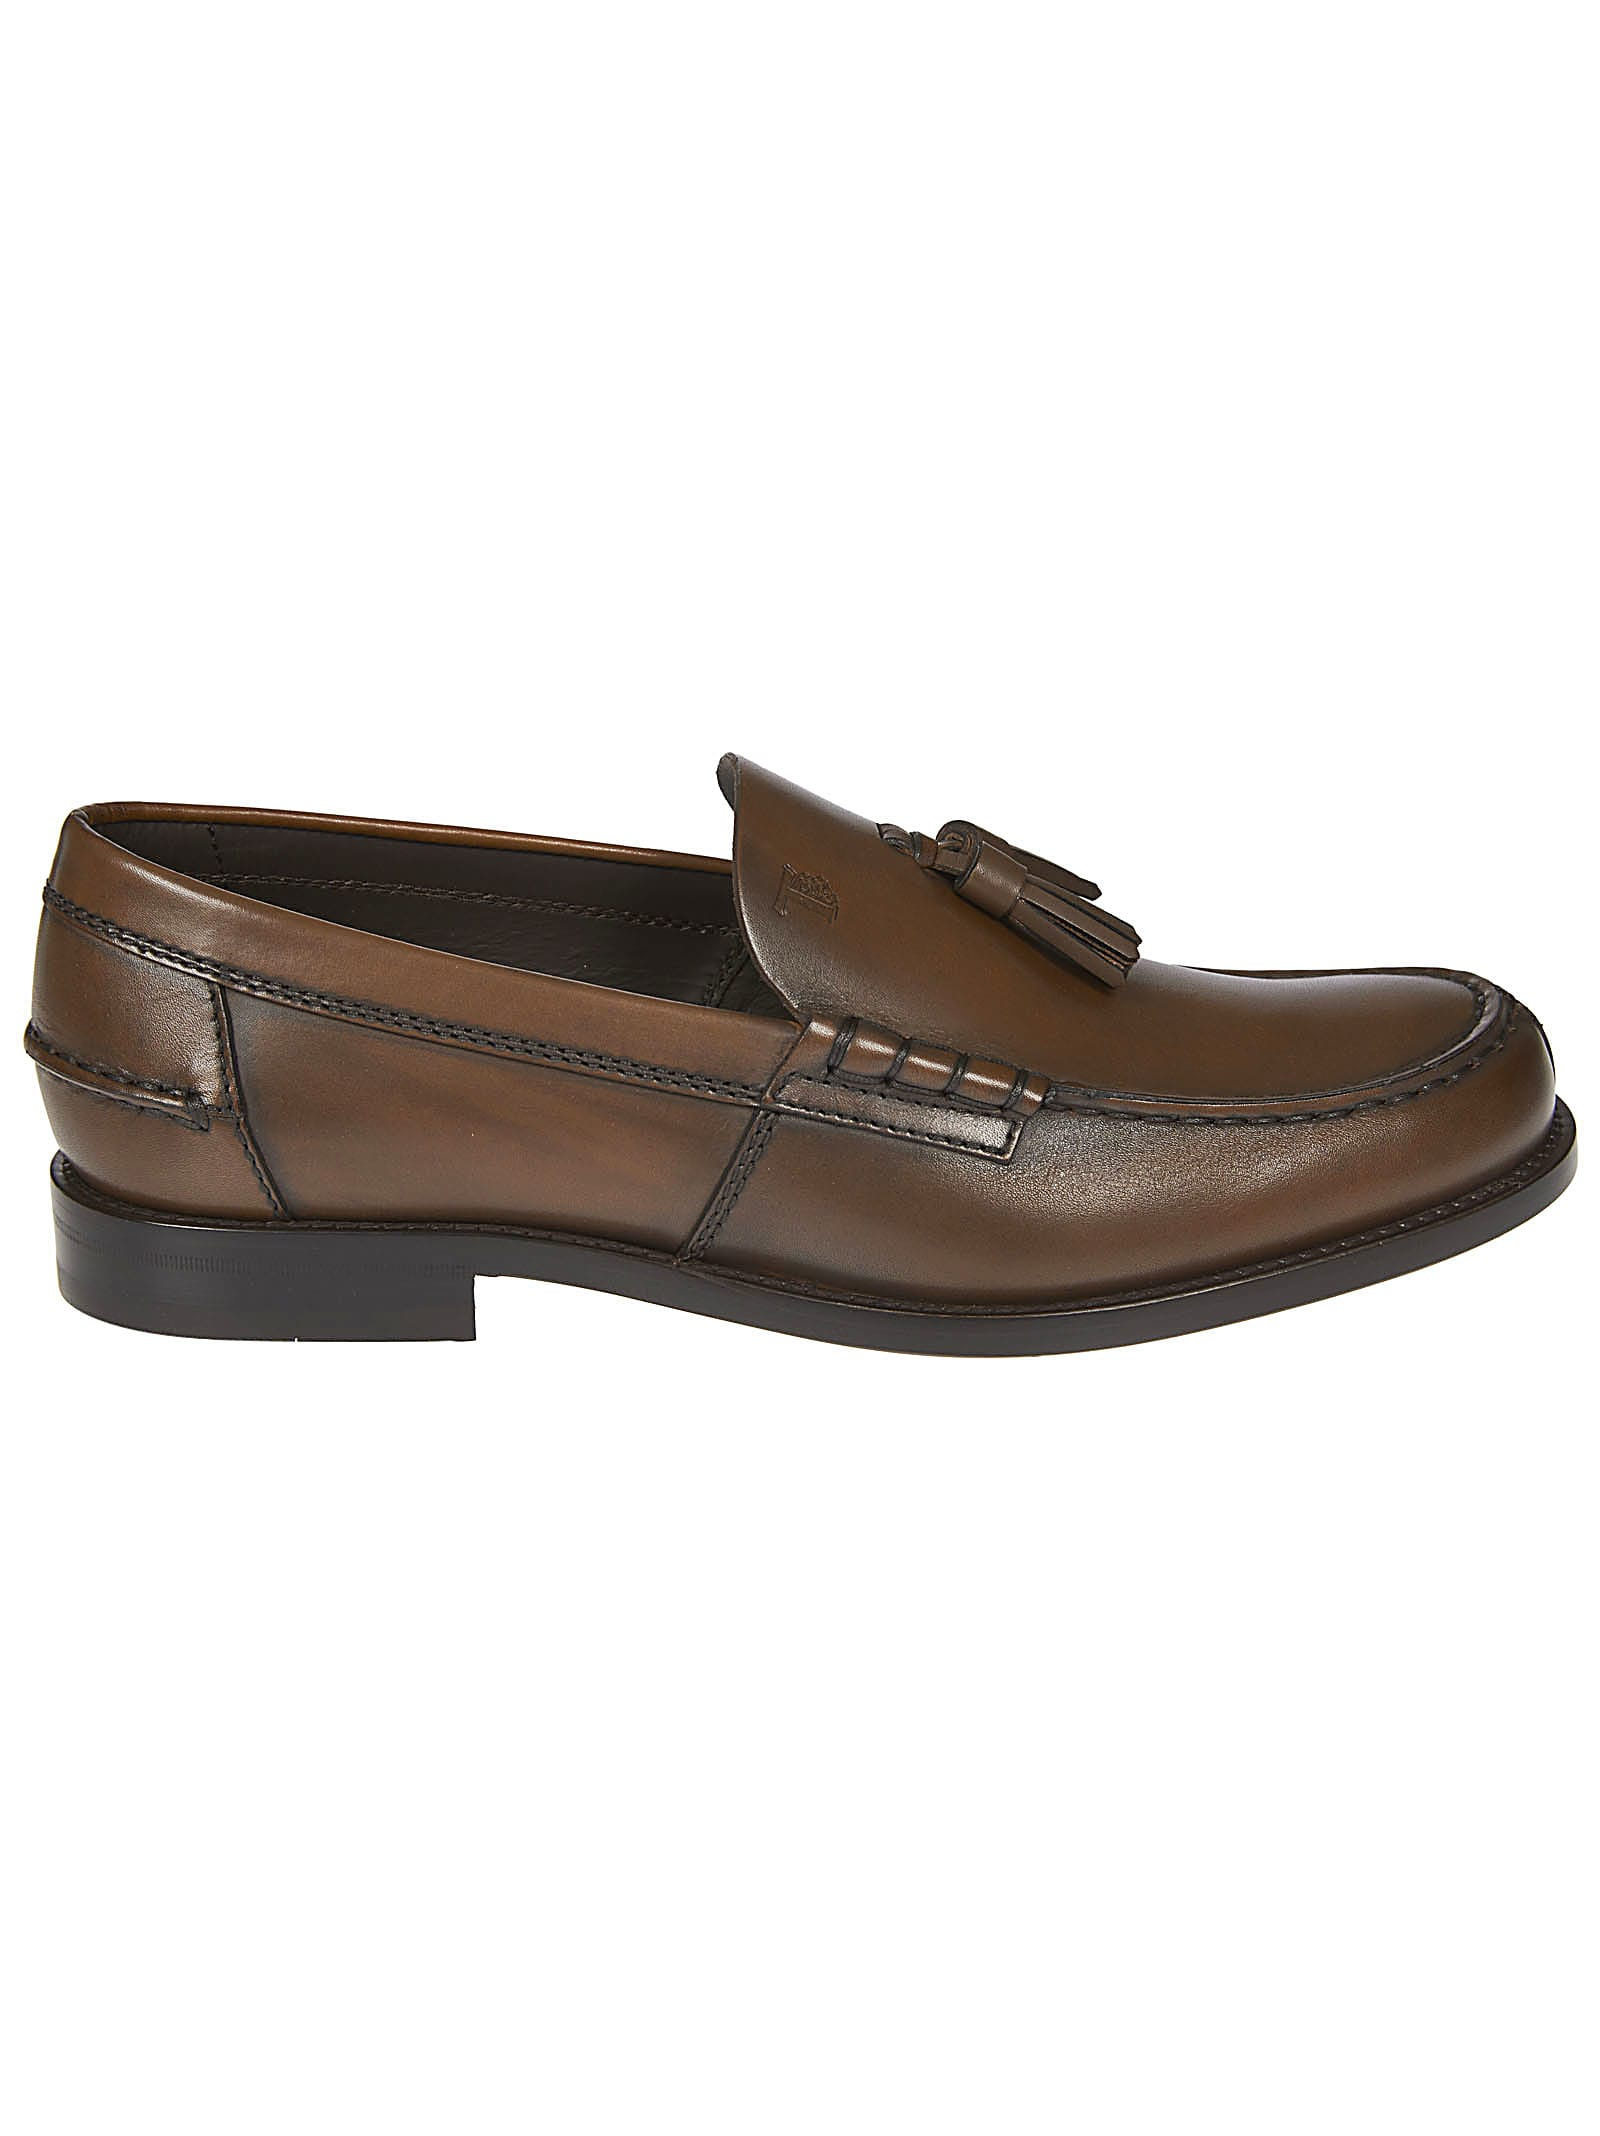 Tods Tassel Detail Loafers